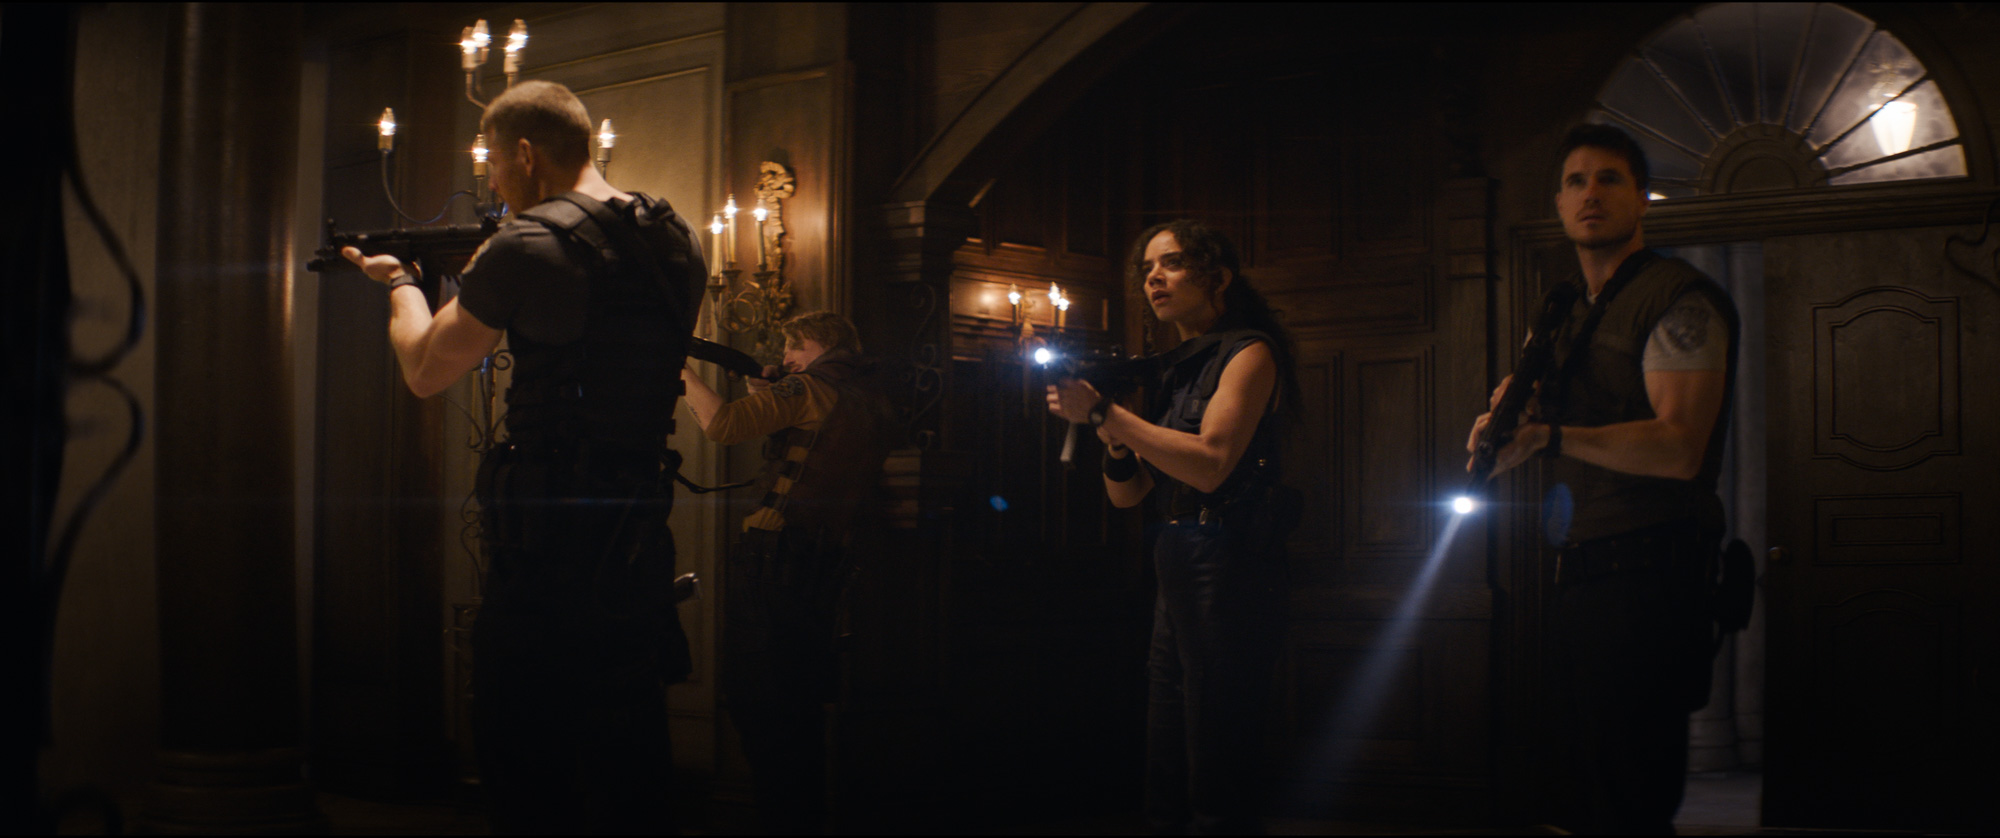 Watch The First Trailer For 'Resident Evil: Welcome To Raccoon City'